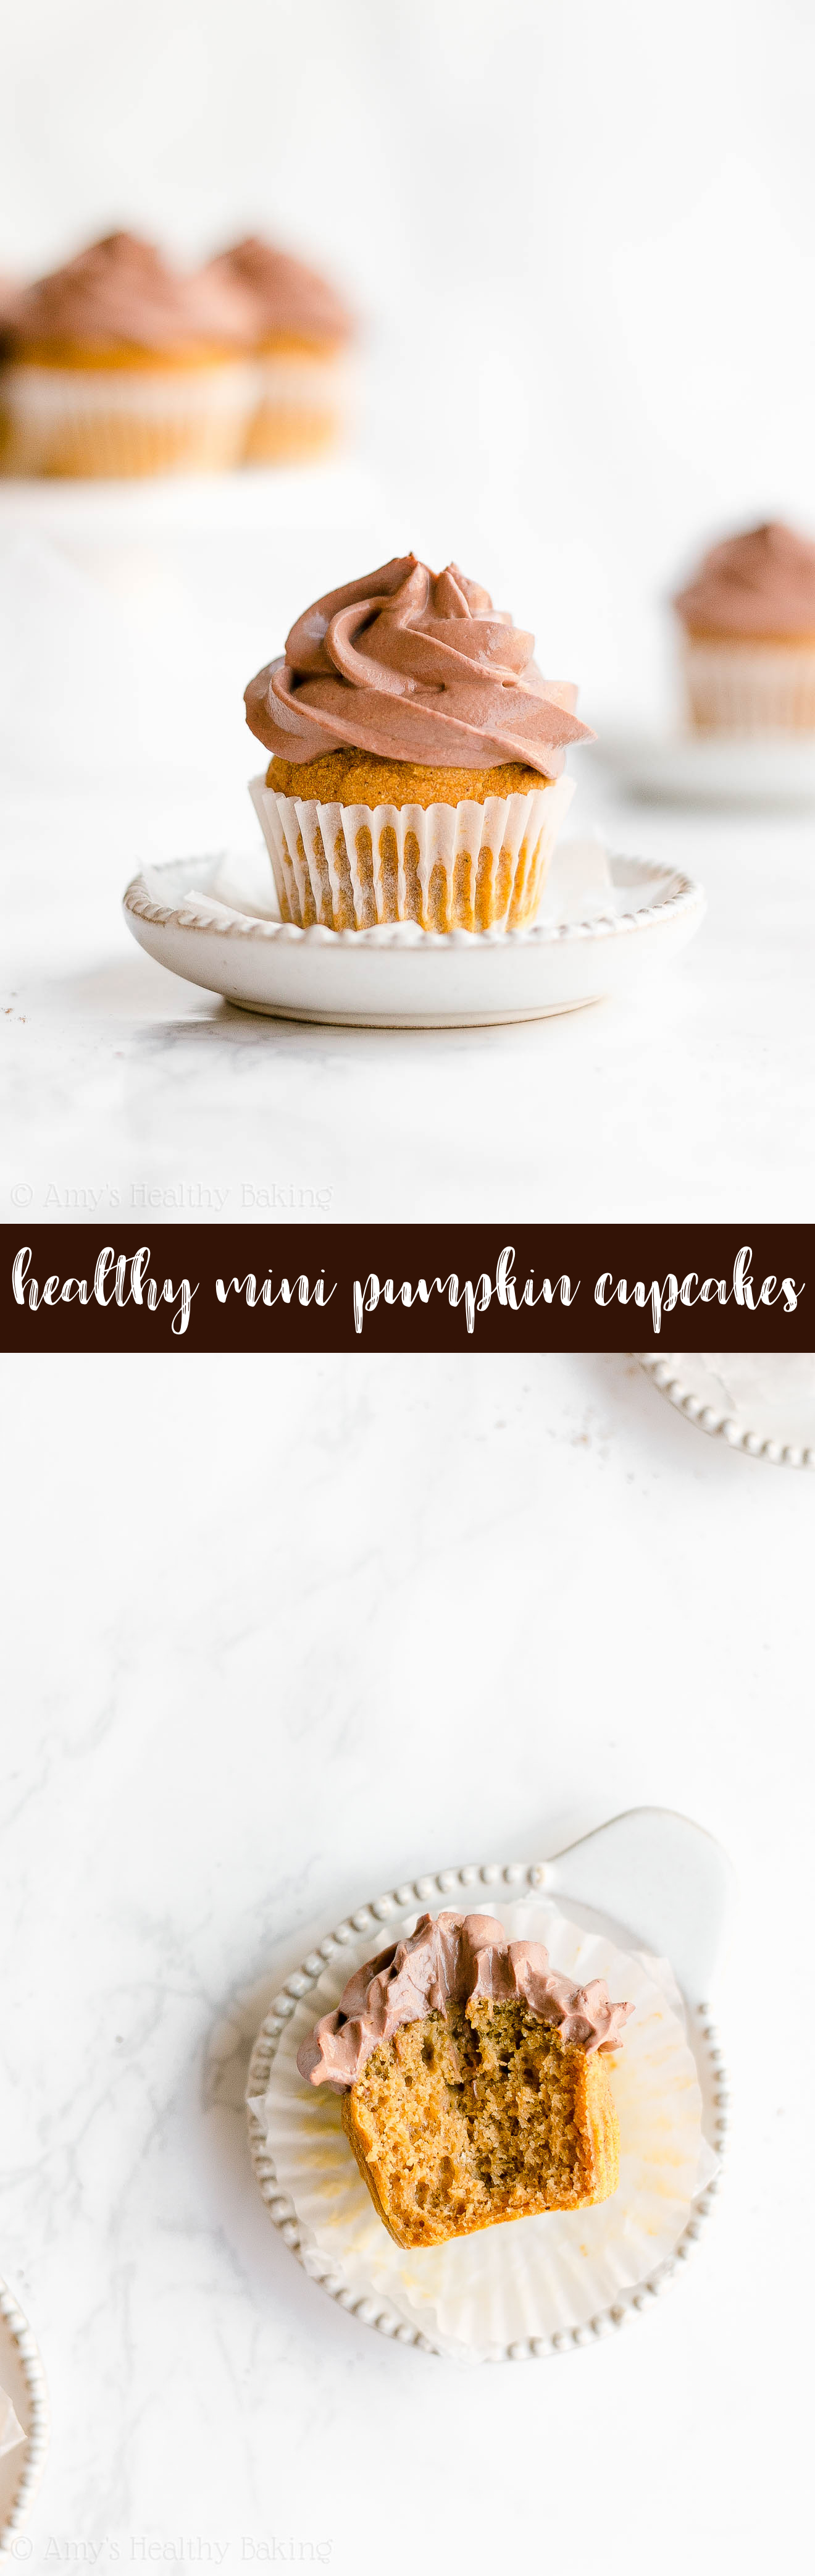 Best Ever Healthy Small Batch Mini Pumpkin Cupcakes with Chocolate Greek Yogurt Frosting